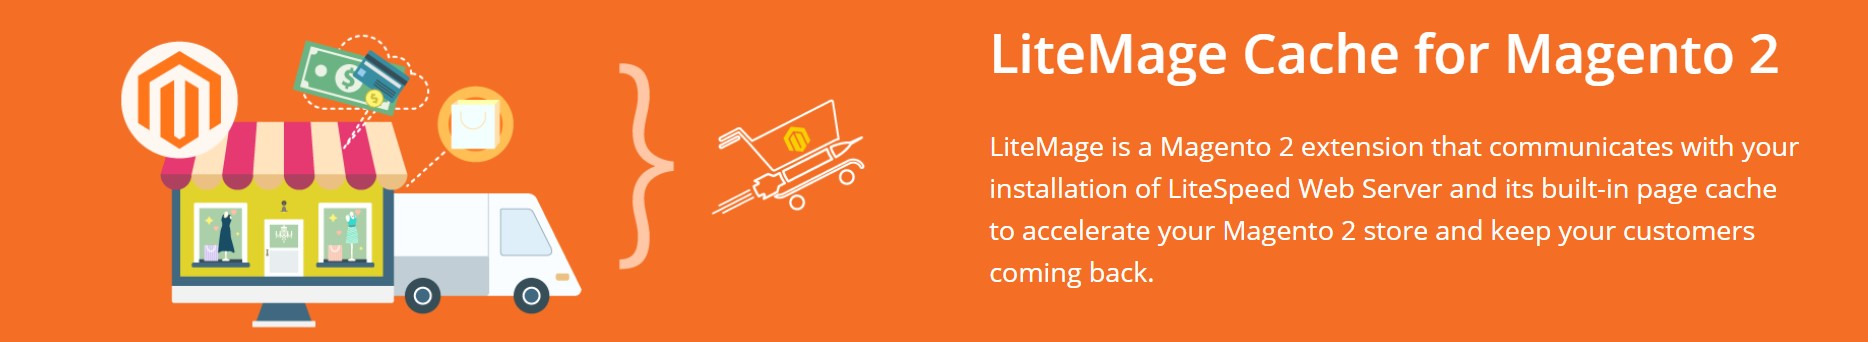 Magento 2 LiteMage Cache extension